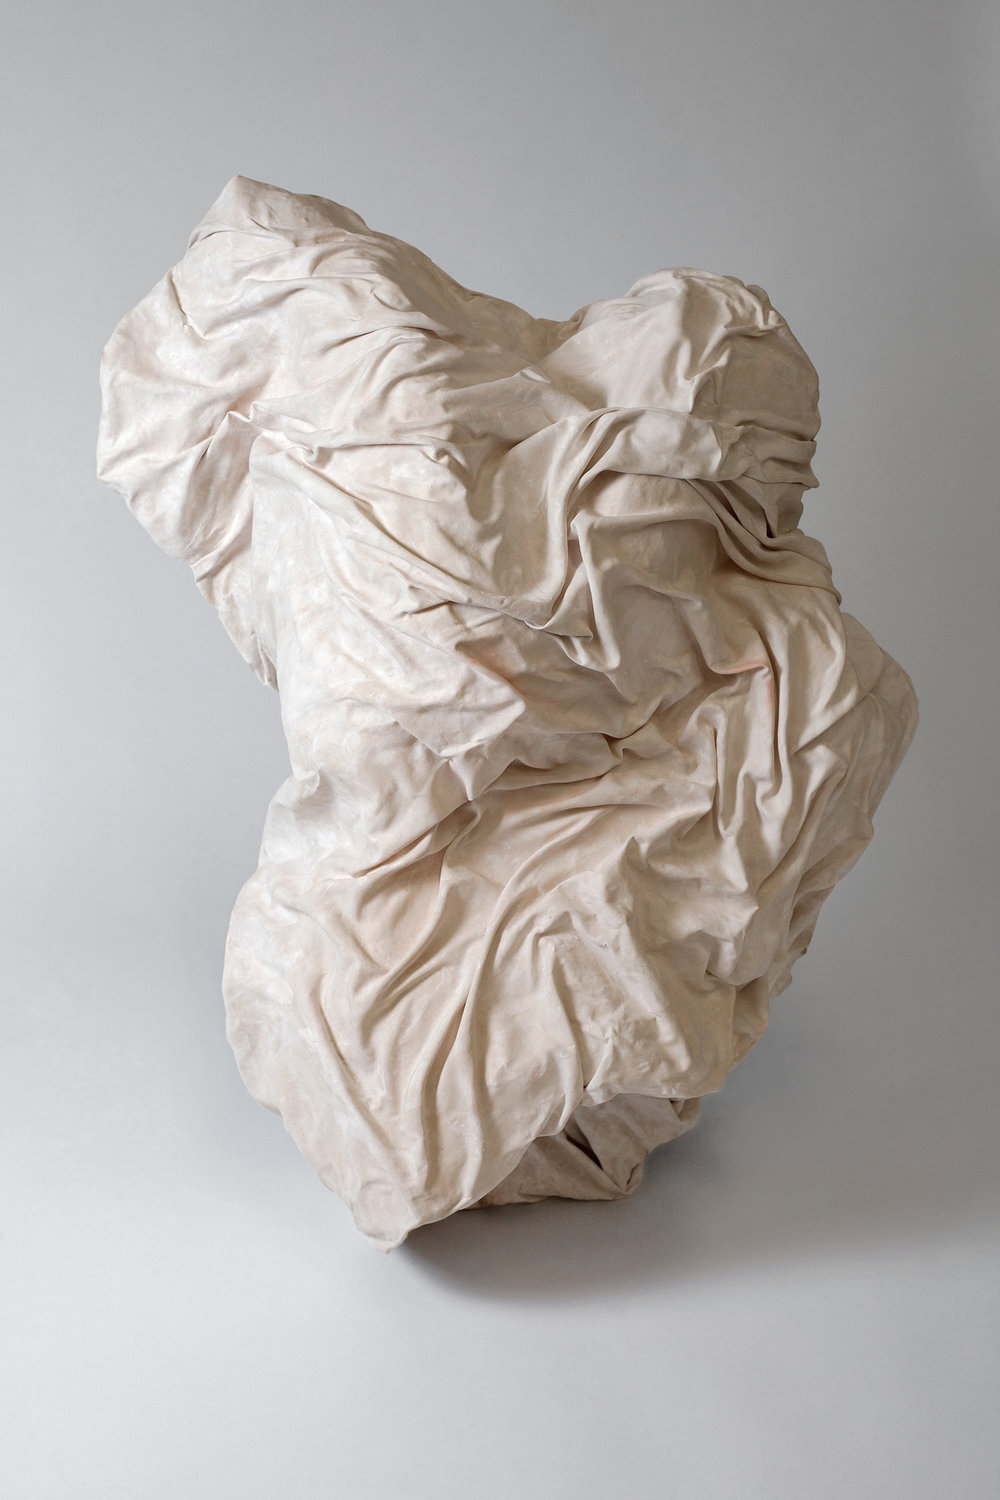 Kelsey McGruer,  Full Of Praise For The Statuary of The Greeks,  Sculpture, Plaster, 2016